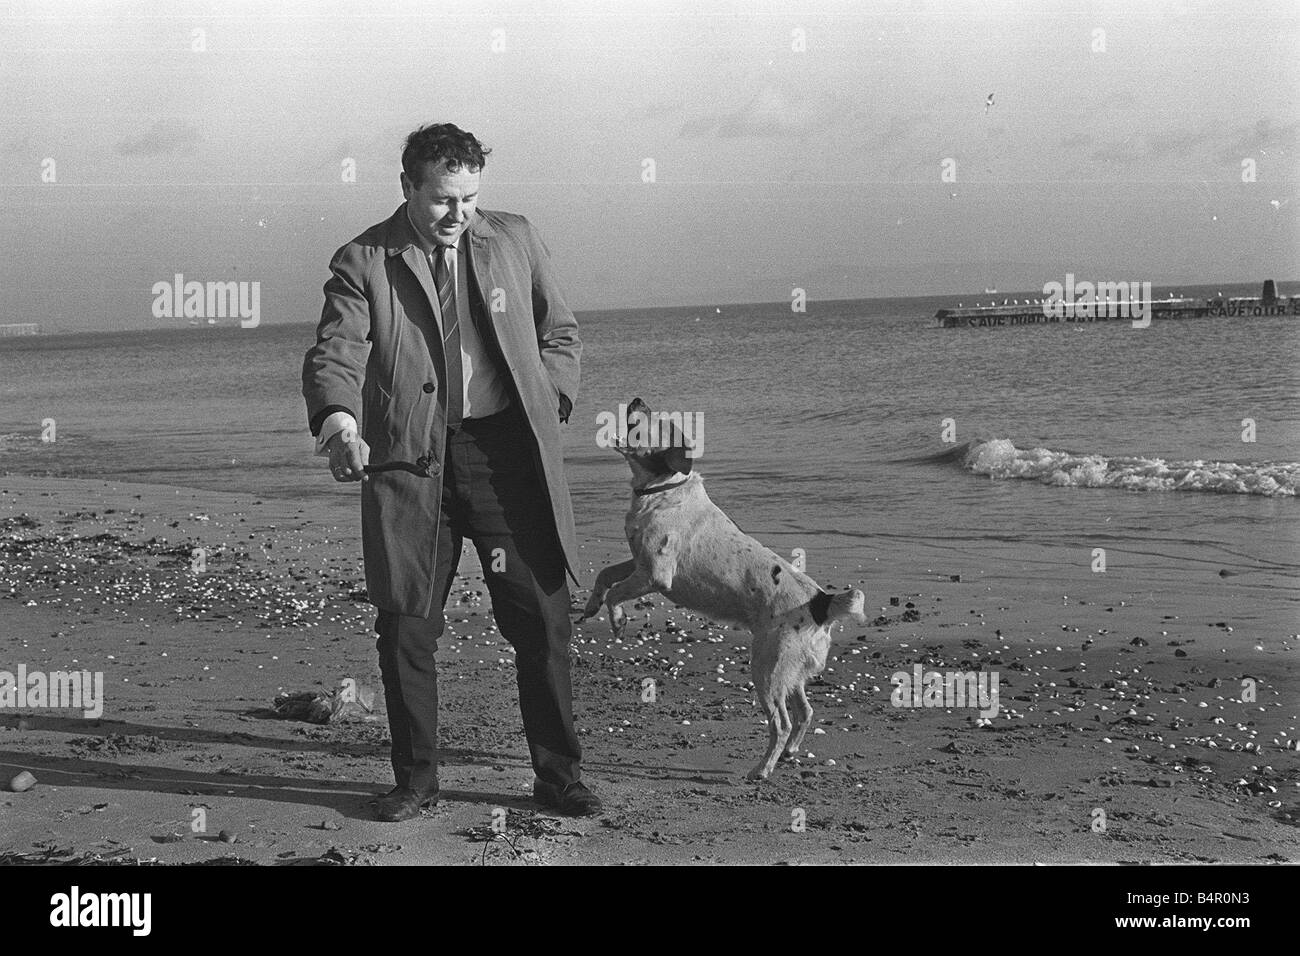 Sean Bourke who helped double agent George Blake escape to Russia playing with his dog beside the sea 23 1 69 Z754 - Stock Image